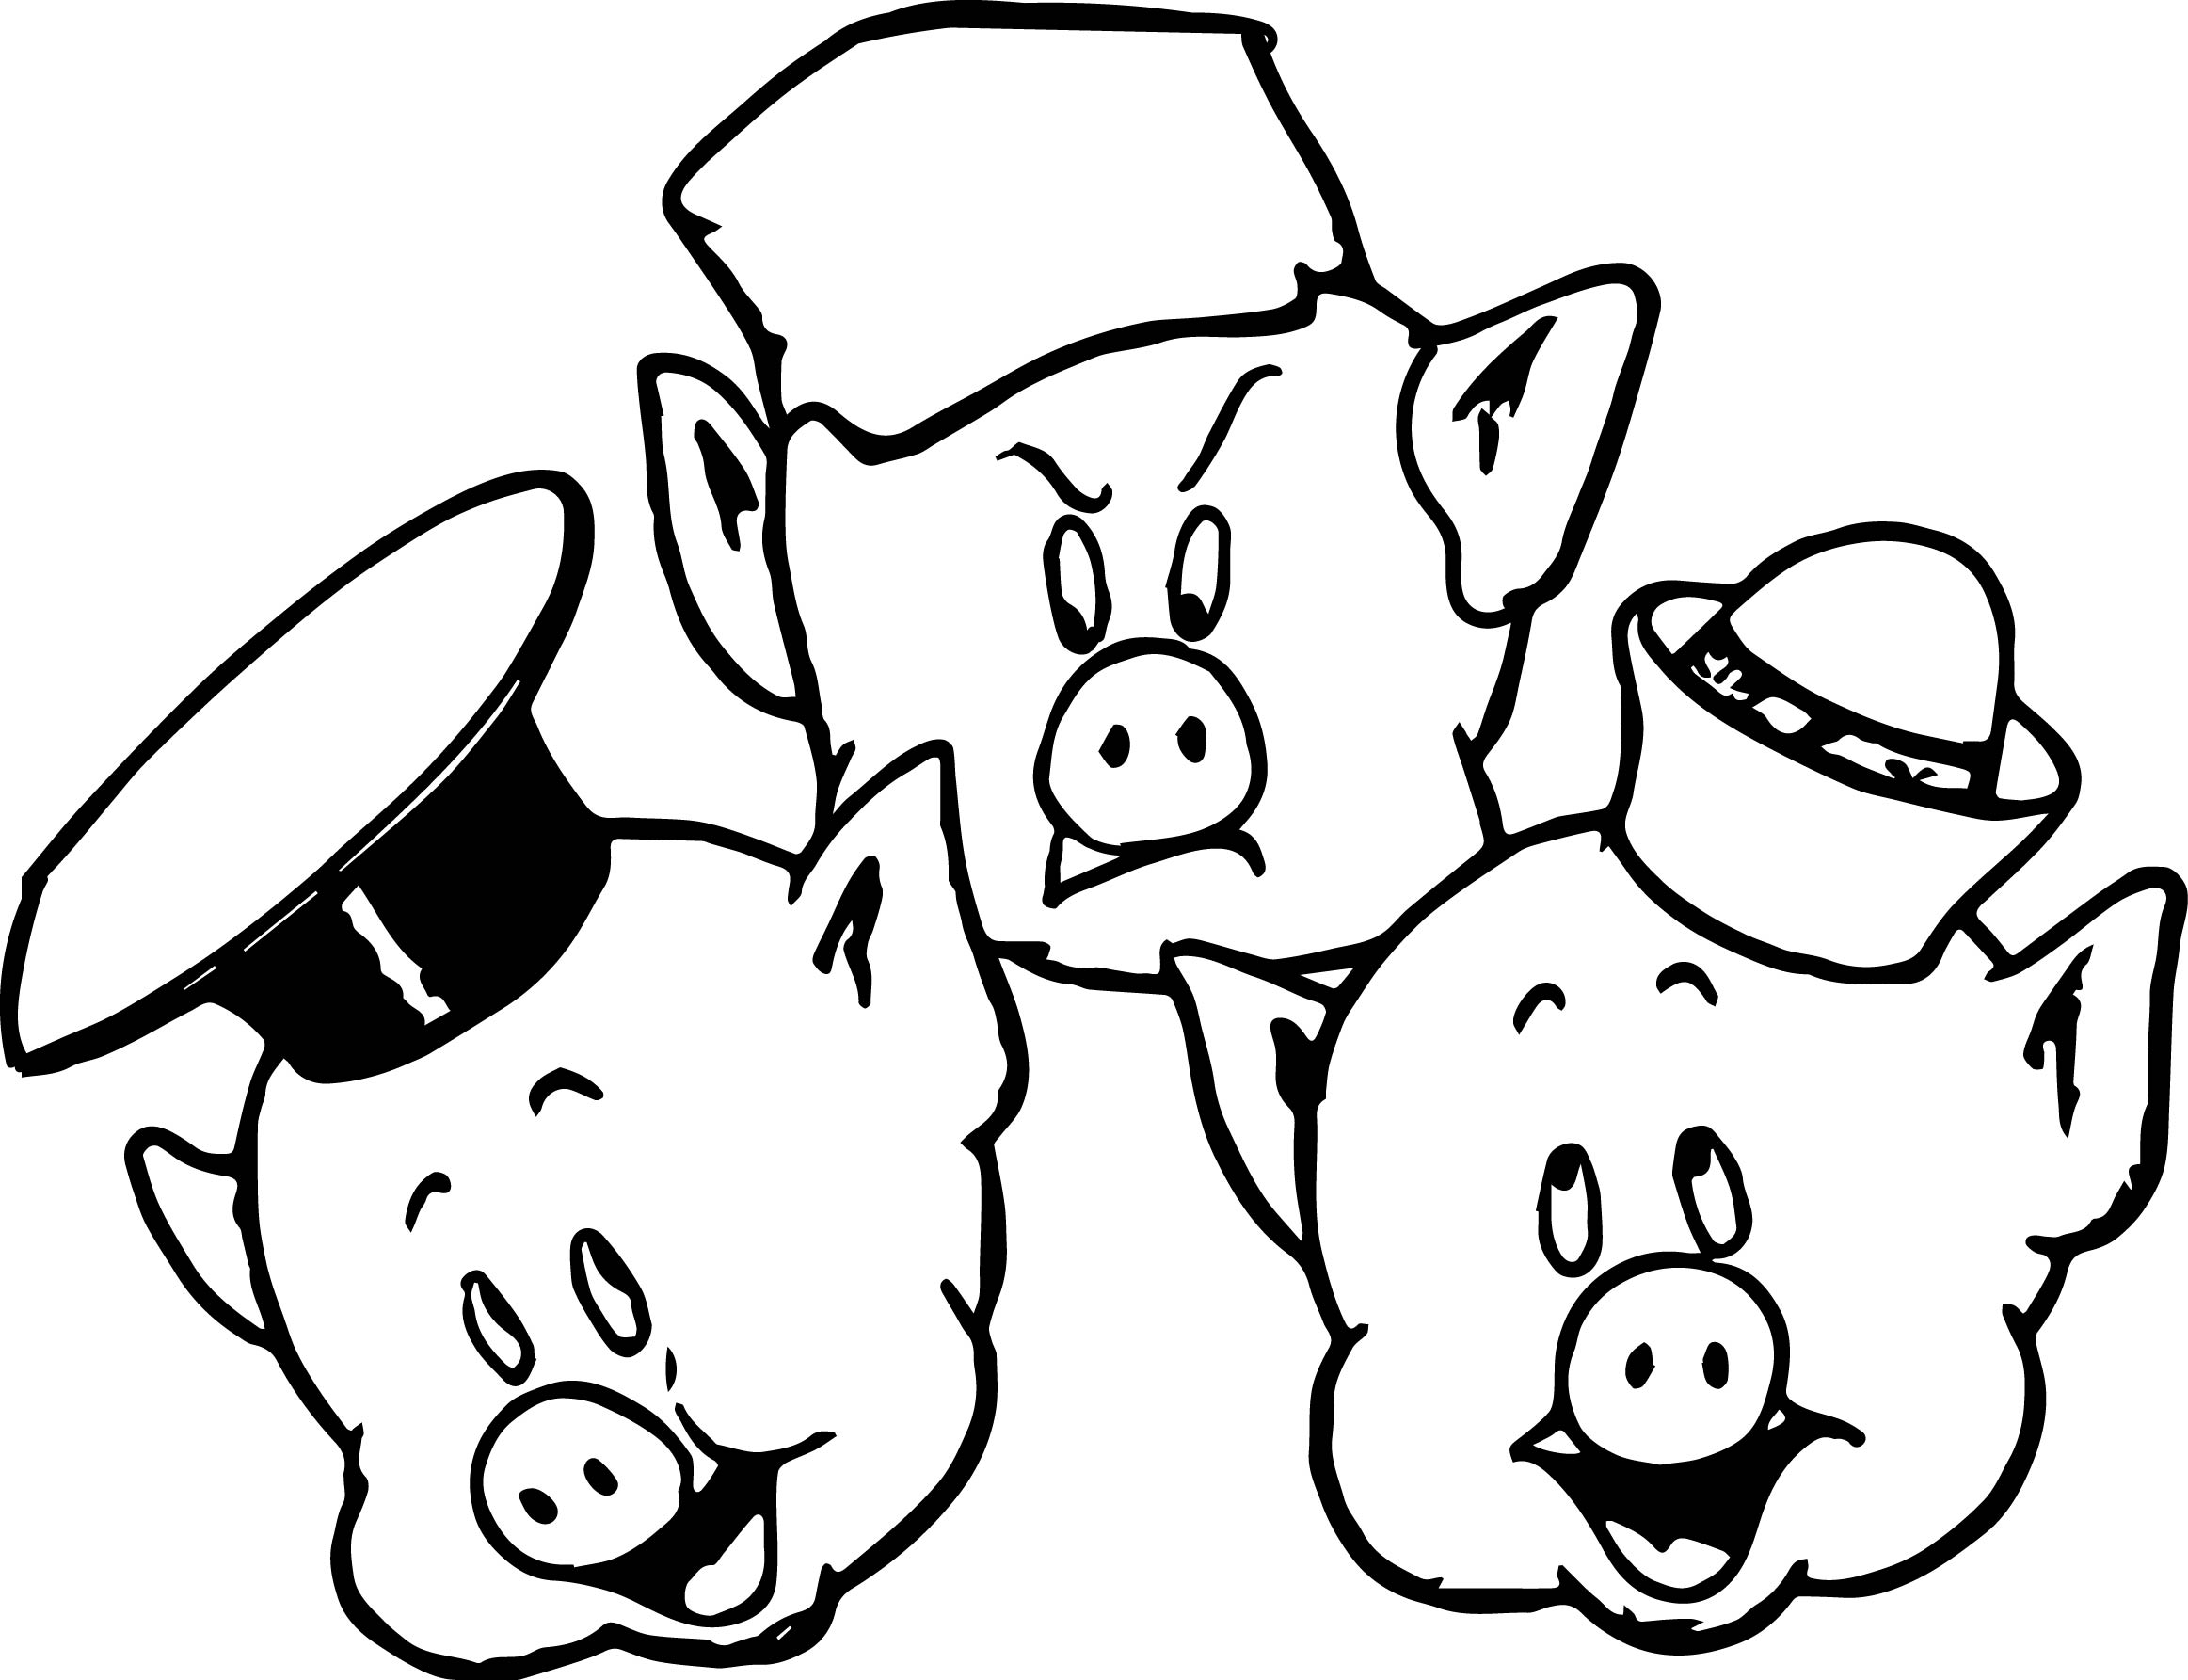 3 Little Pigs Face Coloring Page